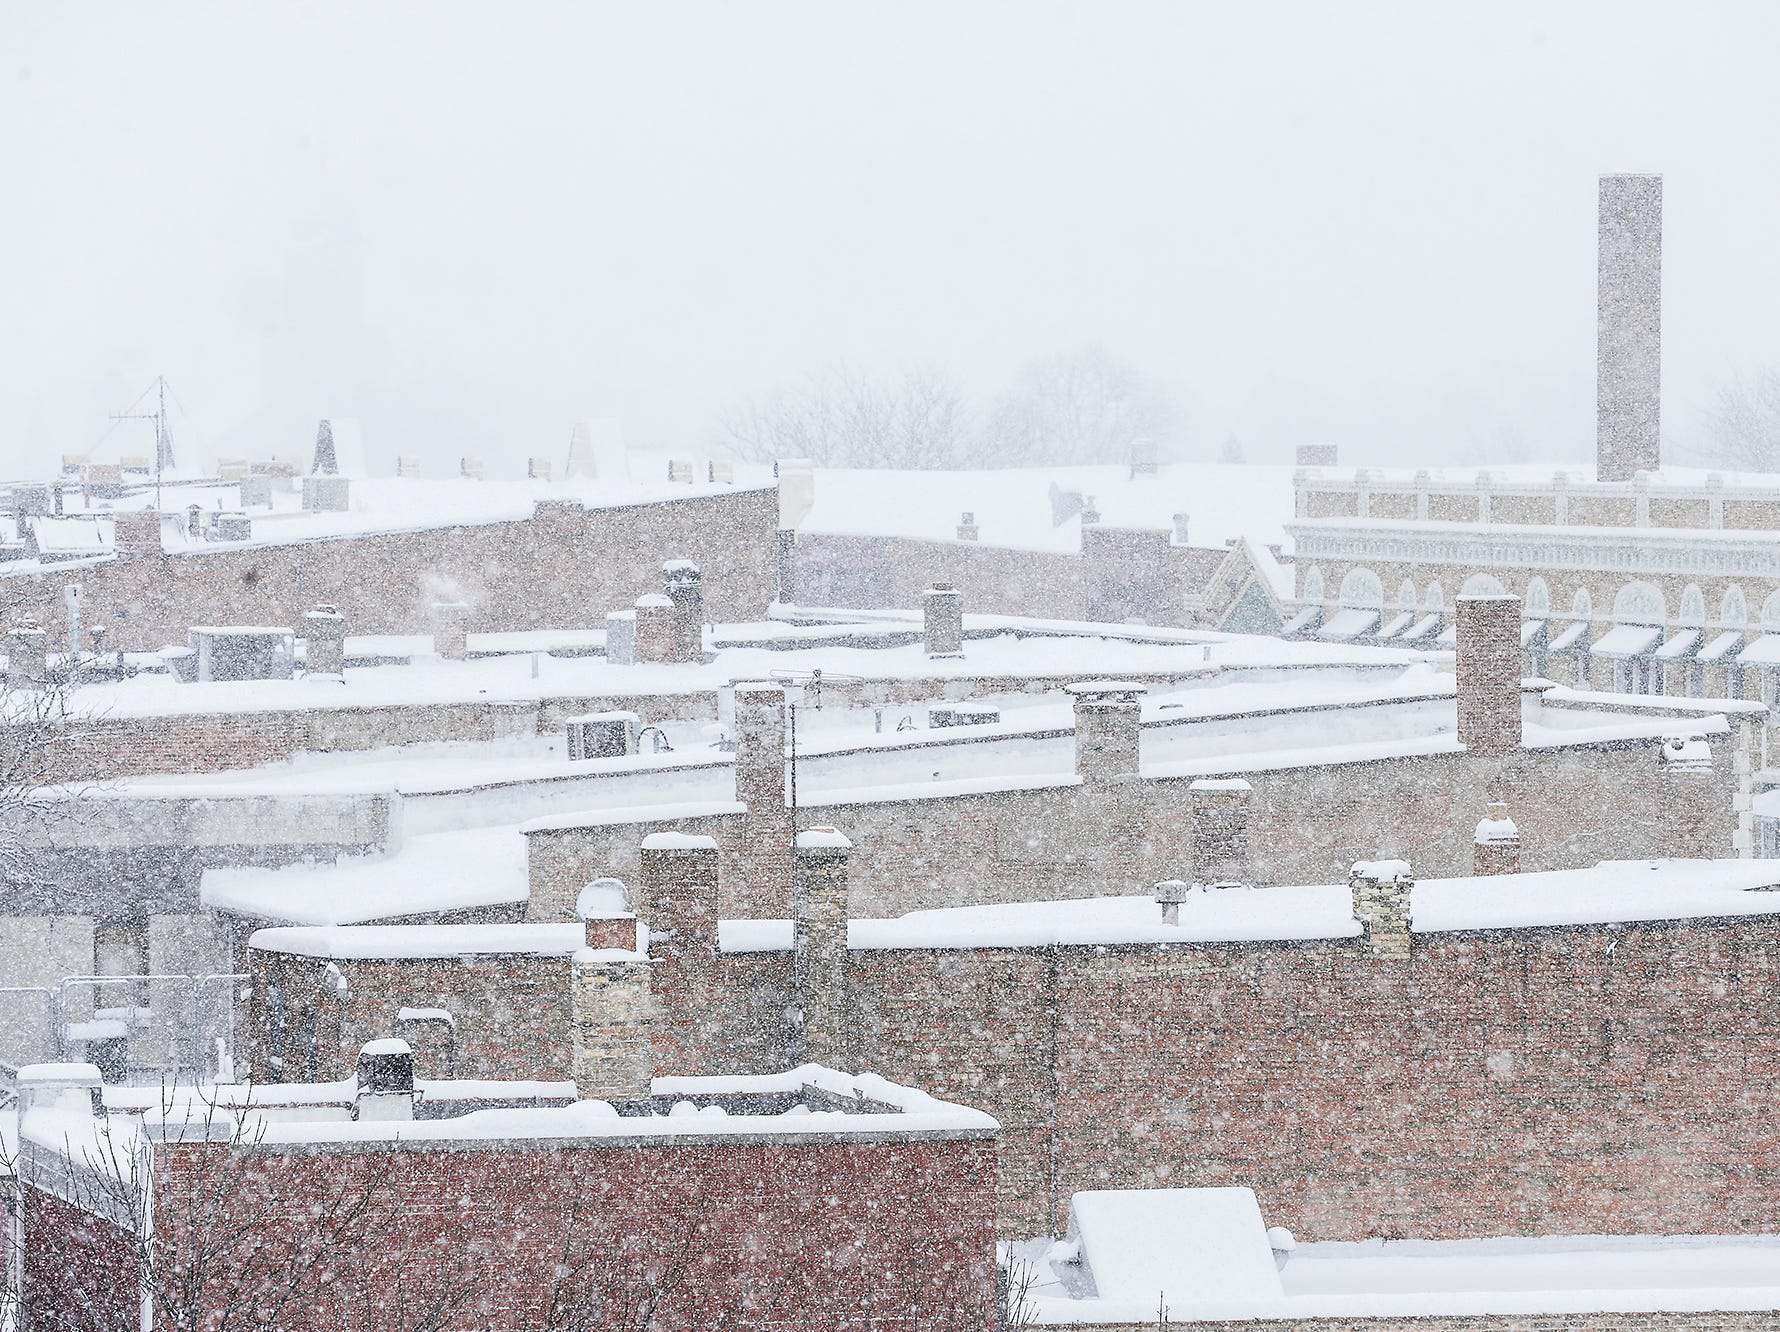 Heavy snow blankets thr rooftops of buildings during a winter storm Tuesday, Feb. 12, 2019, on Main Street in Fond du Lac, Wis. A winter storm warning was issued for the area.